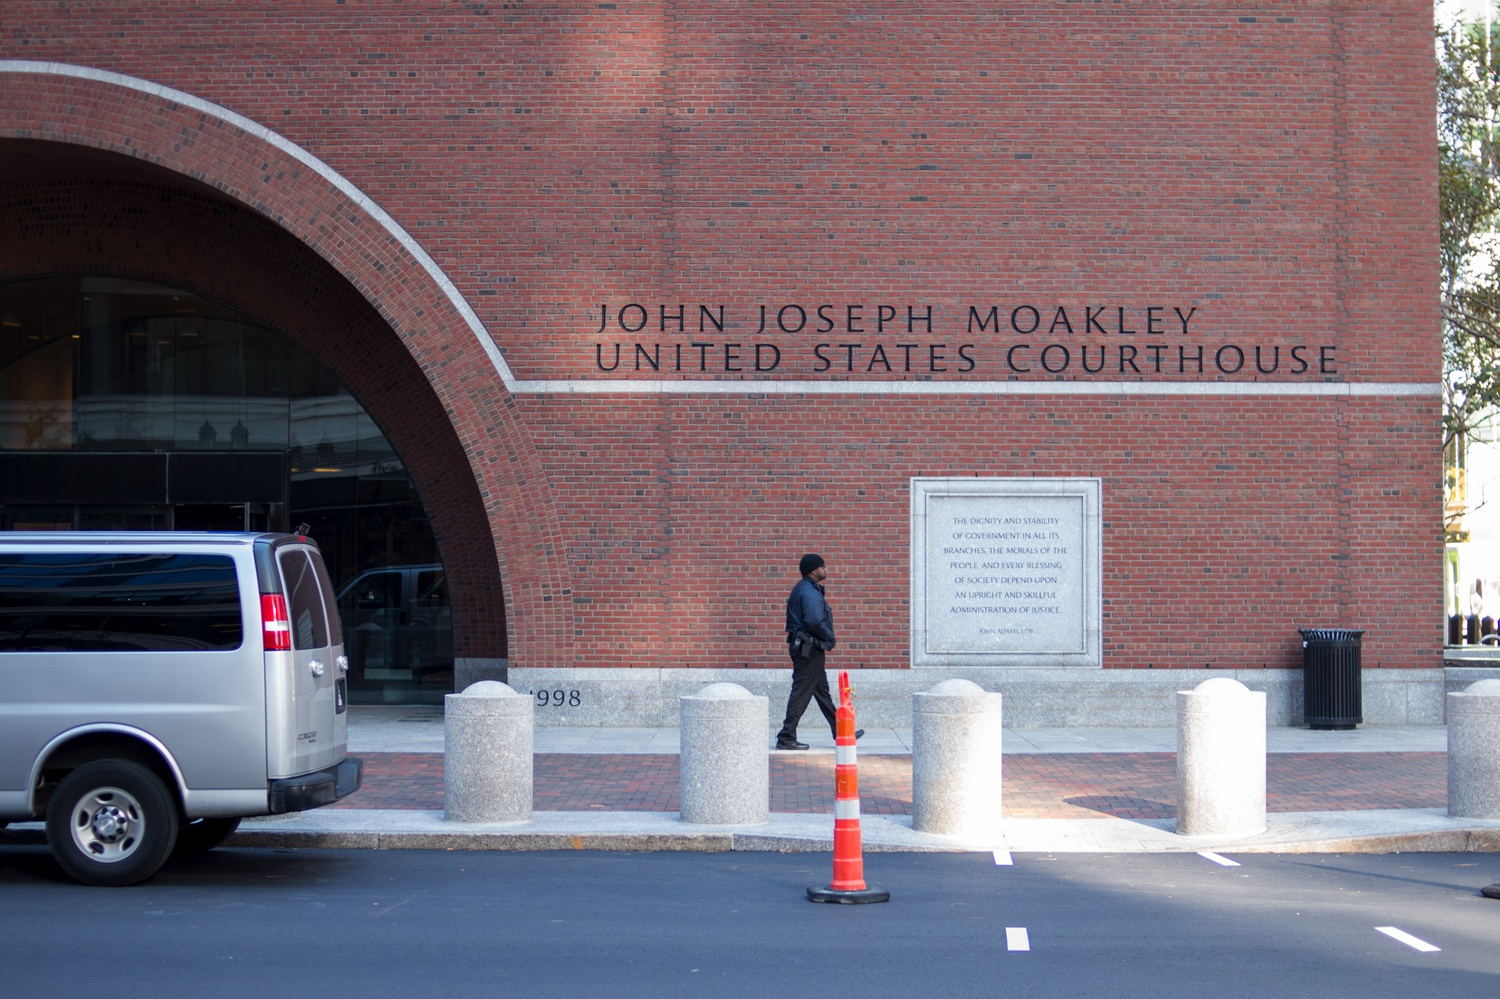 Harvard's ongoing admissions lawsuit was tried at the John Joseph Moakley Courthouse in Boston last fall.